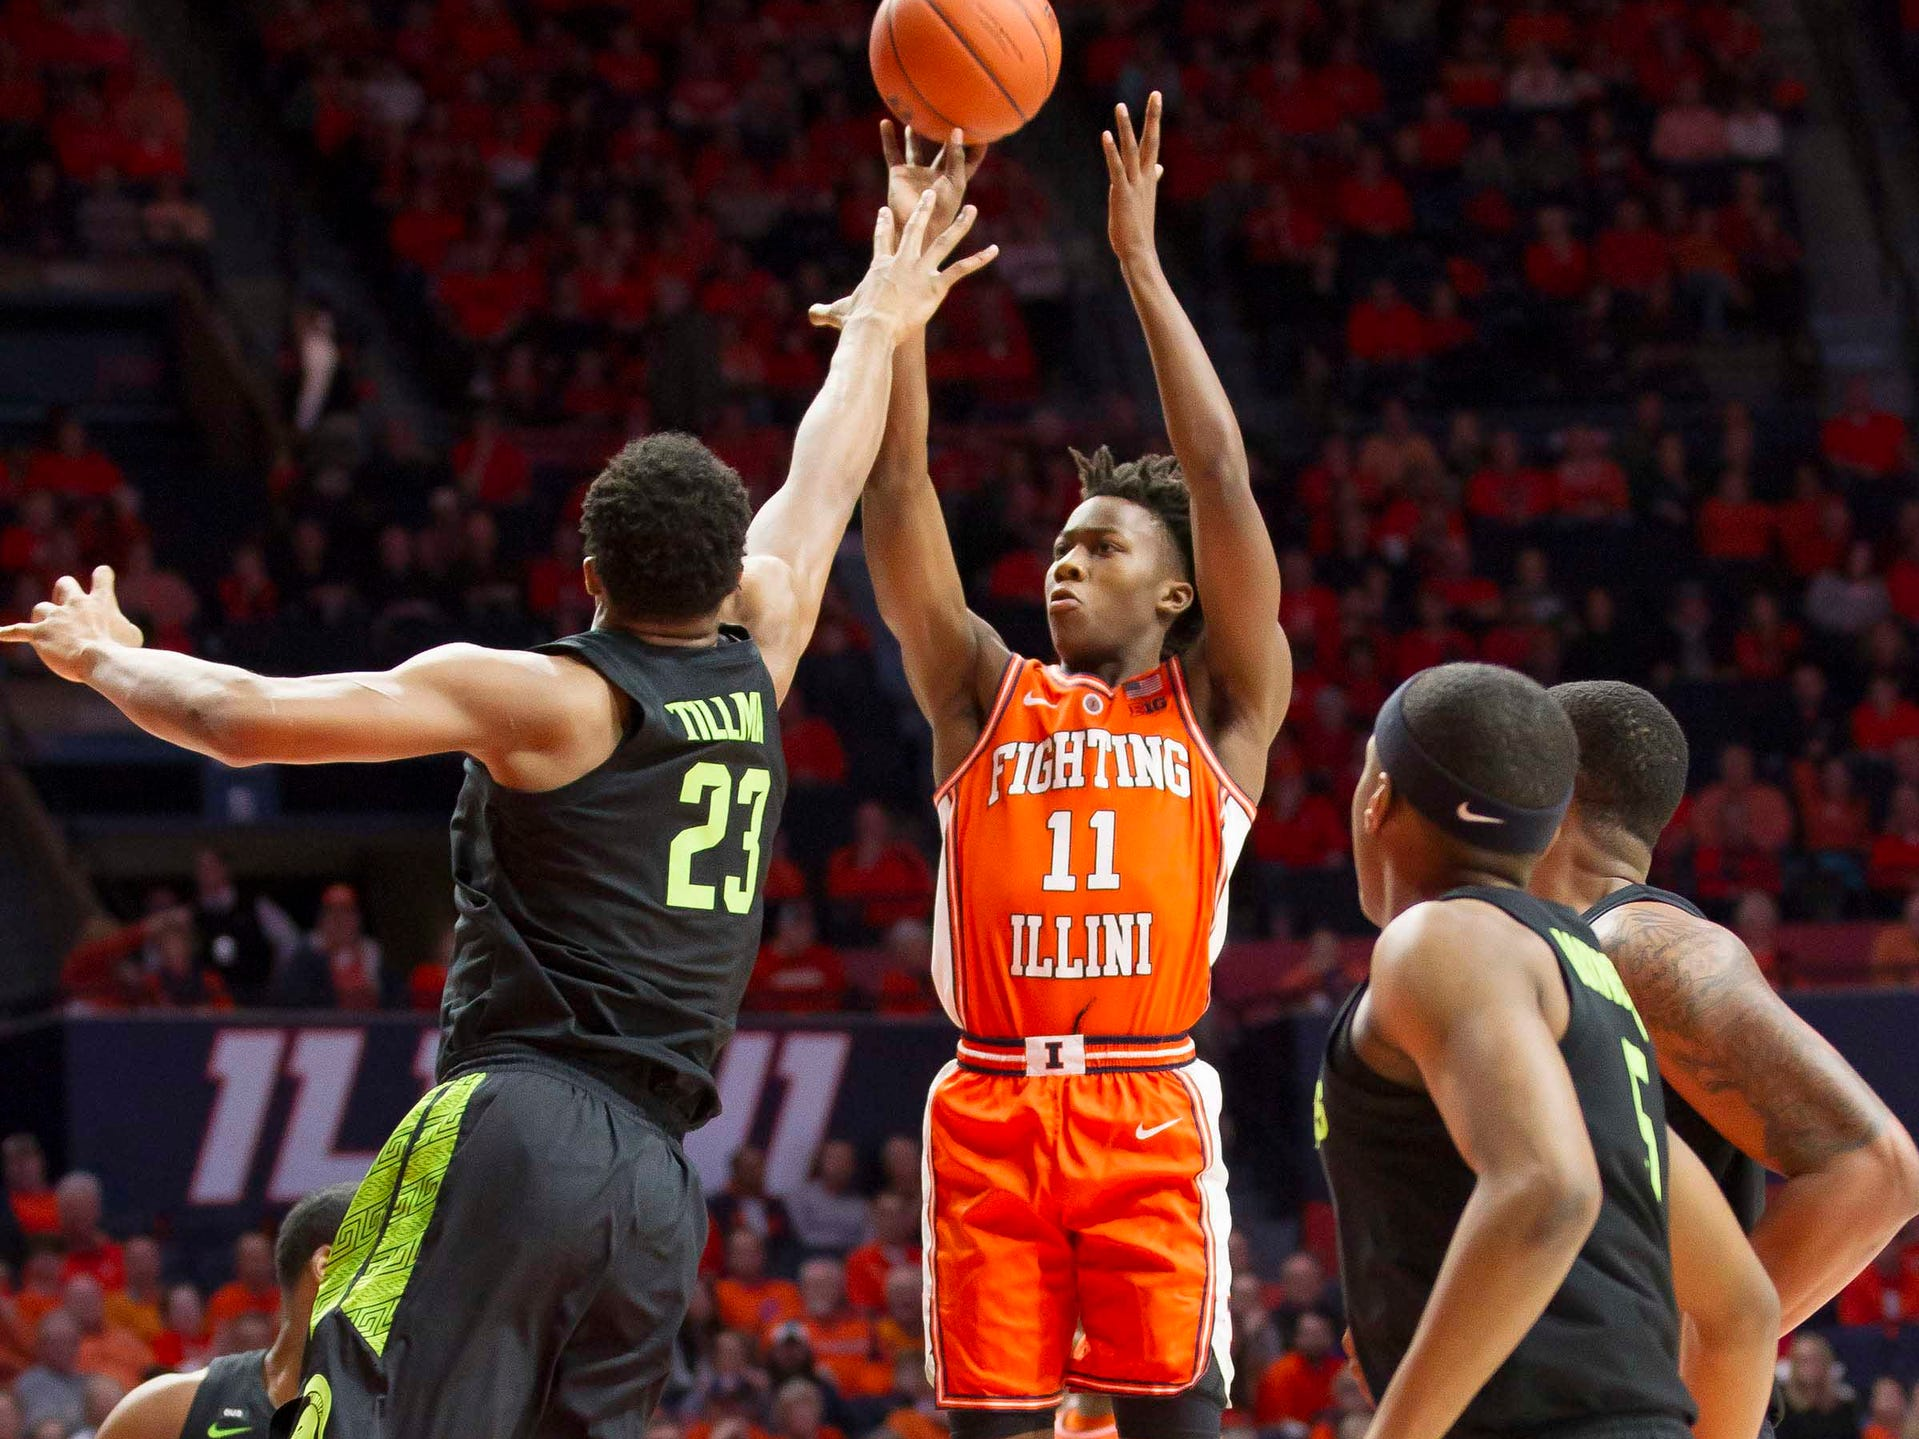 Illinois Fighting Illini guard Ayo Dosunmu (11) shoots defended by Michigan State Spartans forward Xavier Tillman (23) during the first half at State Farm Center on Tuesday, Feb. 5, 2019.